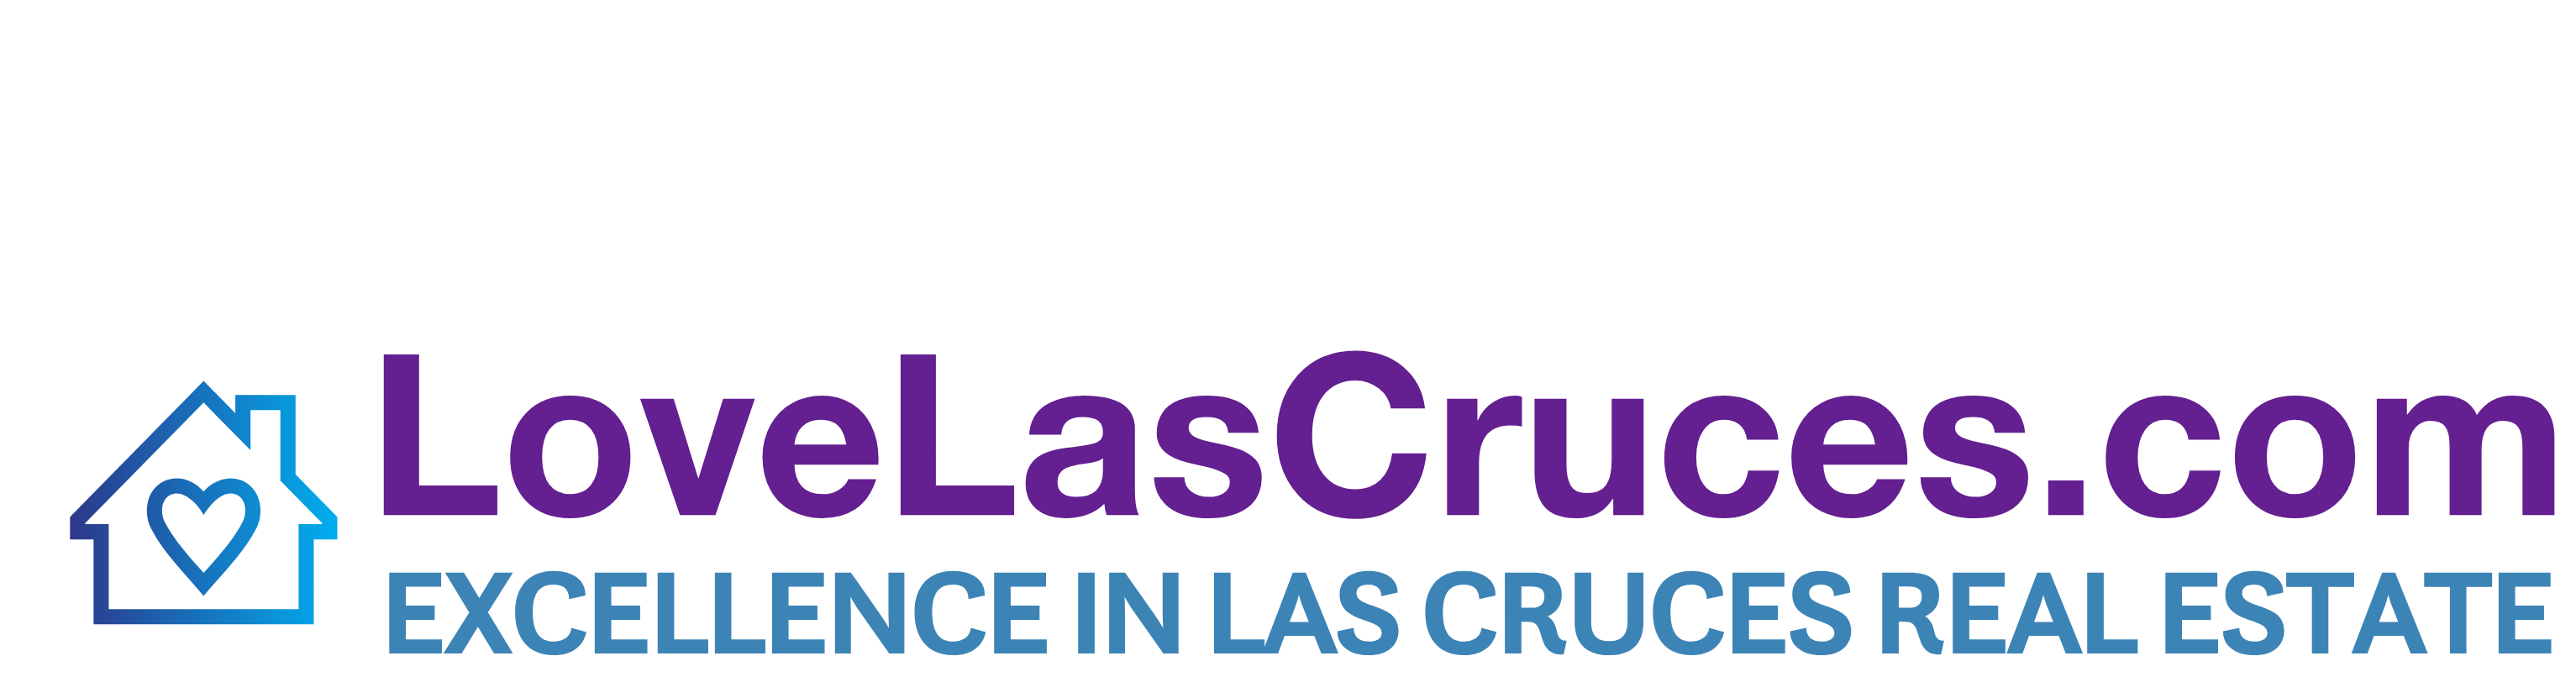 Love Las Cruces - Excellence in Las Cruces Real Estate